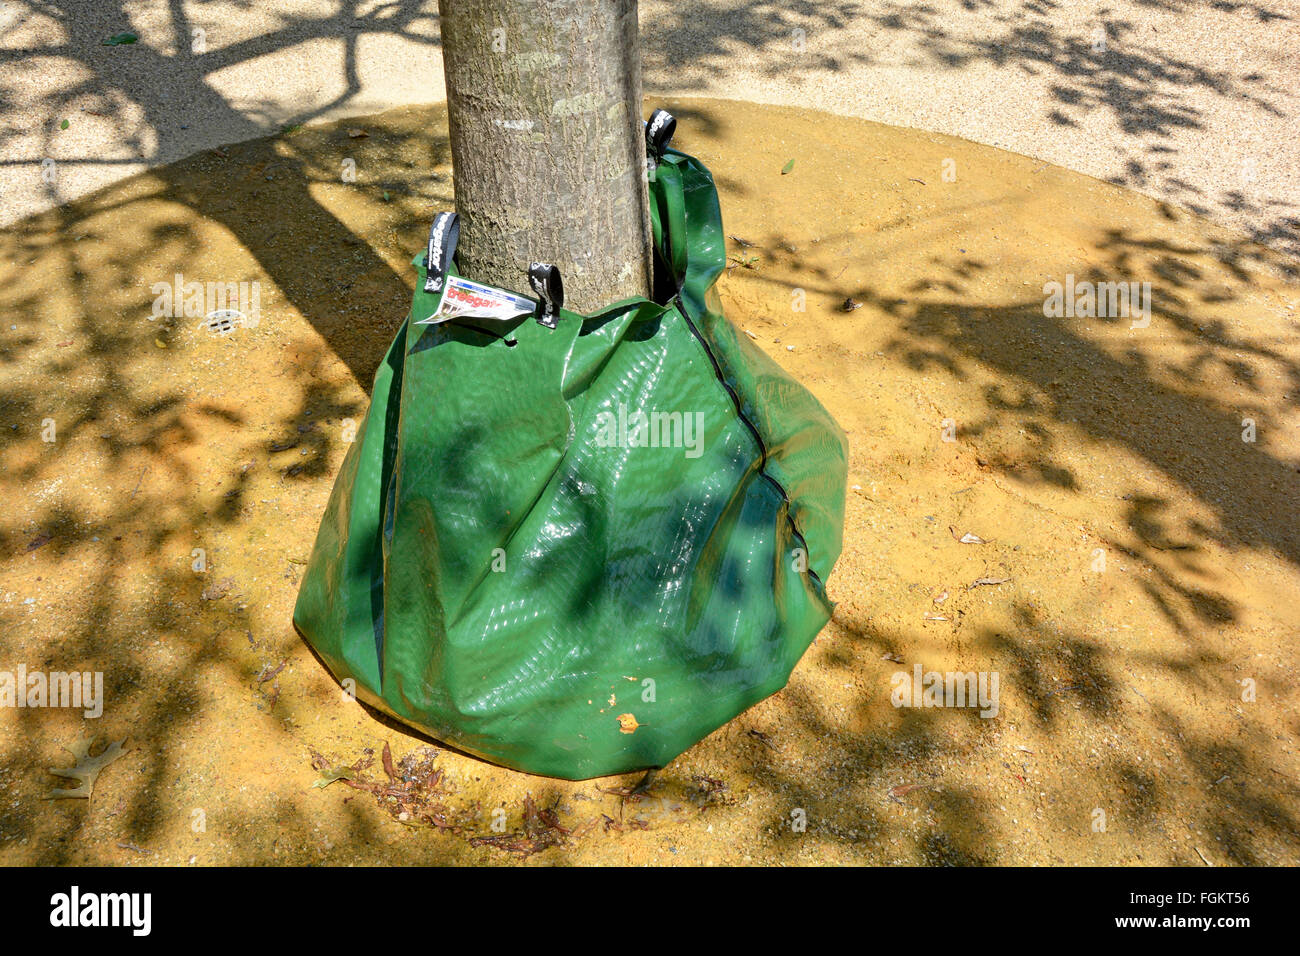 Treegator slow release water bag placed at the bottom of trunk new planting of trees in the Queen Elizabeth Olympic - Stock Image